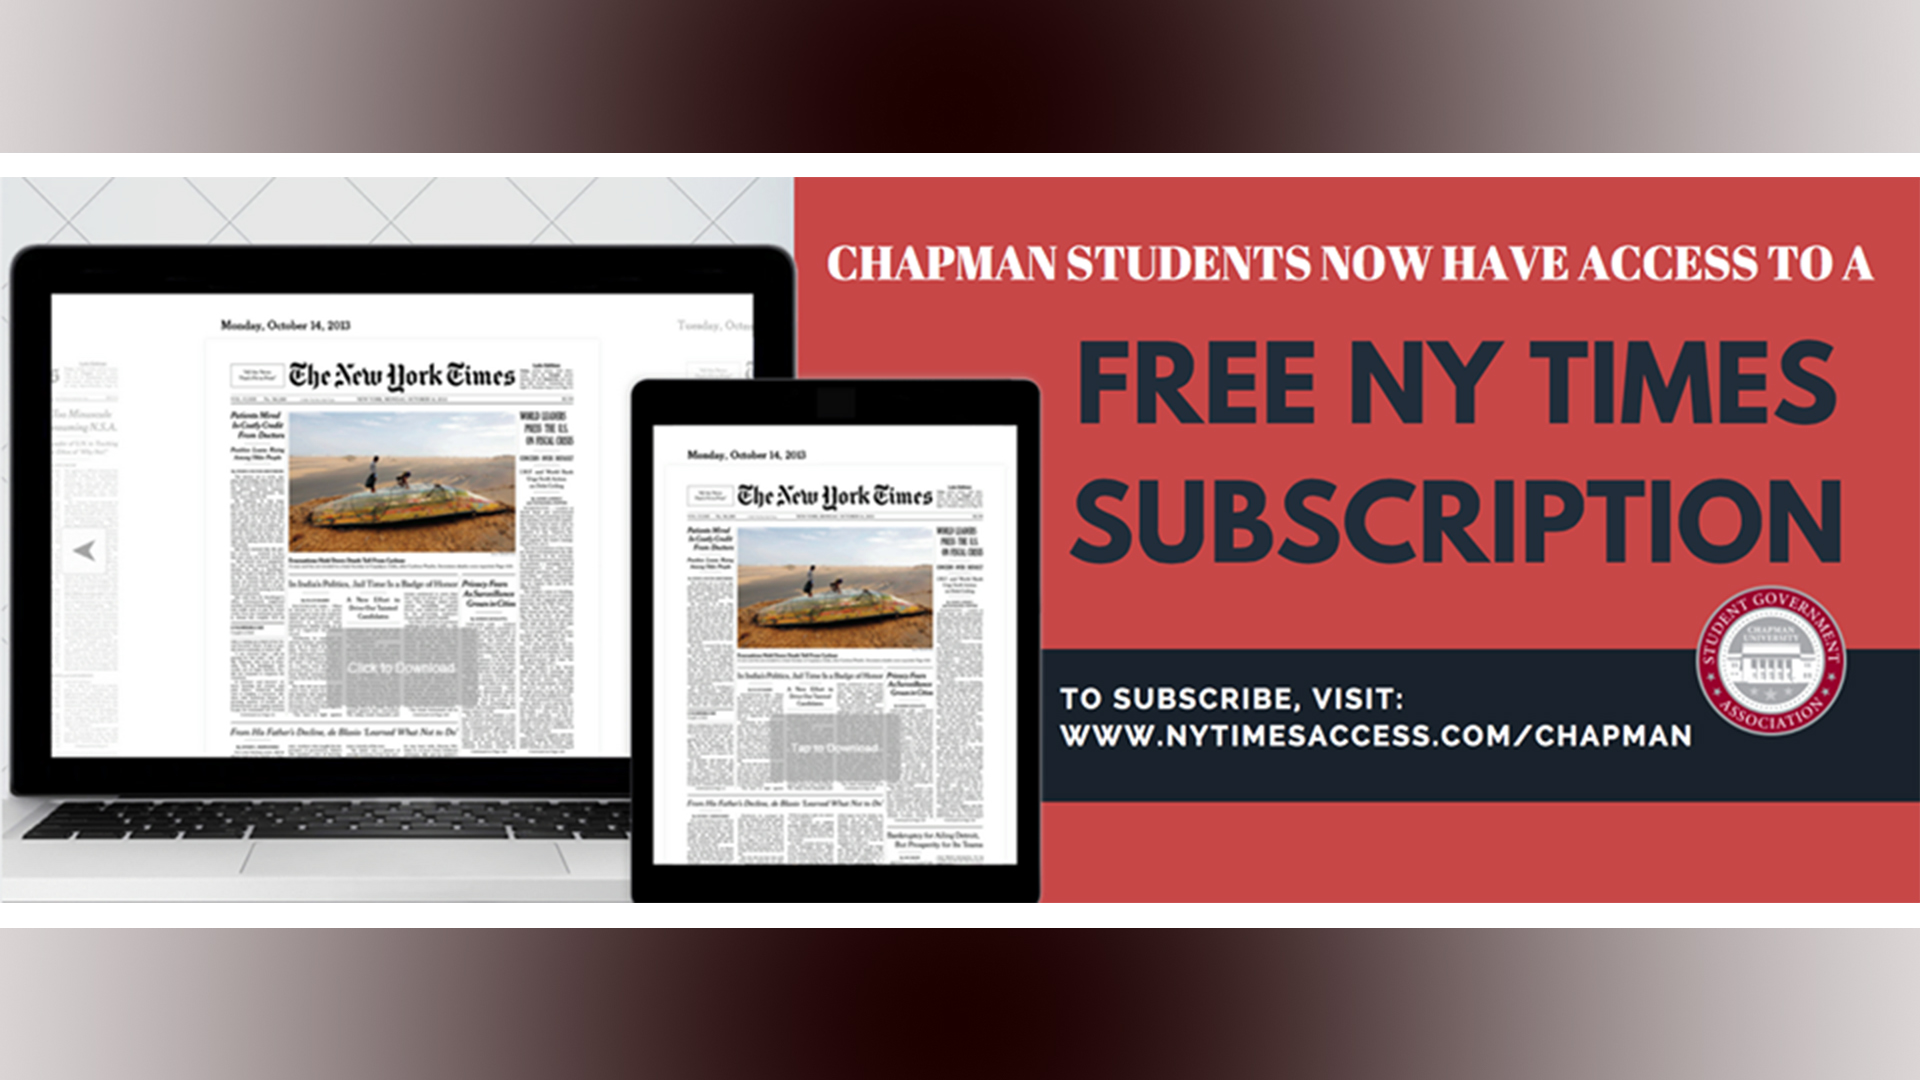 Nytimes Com For Chapman Students Chapman University Students Now Have Access To A Free Subscription Information Systems Technology